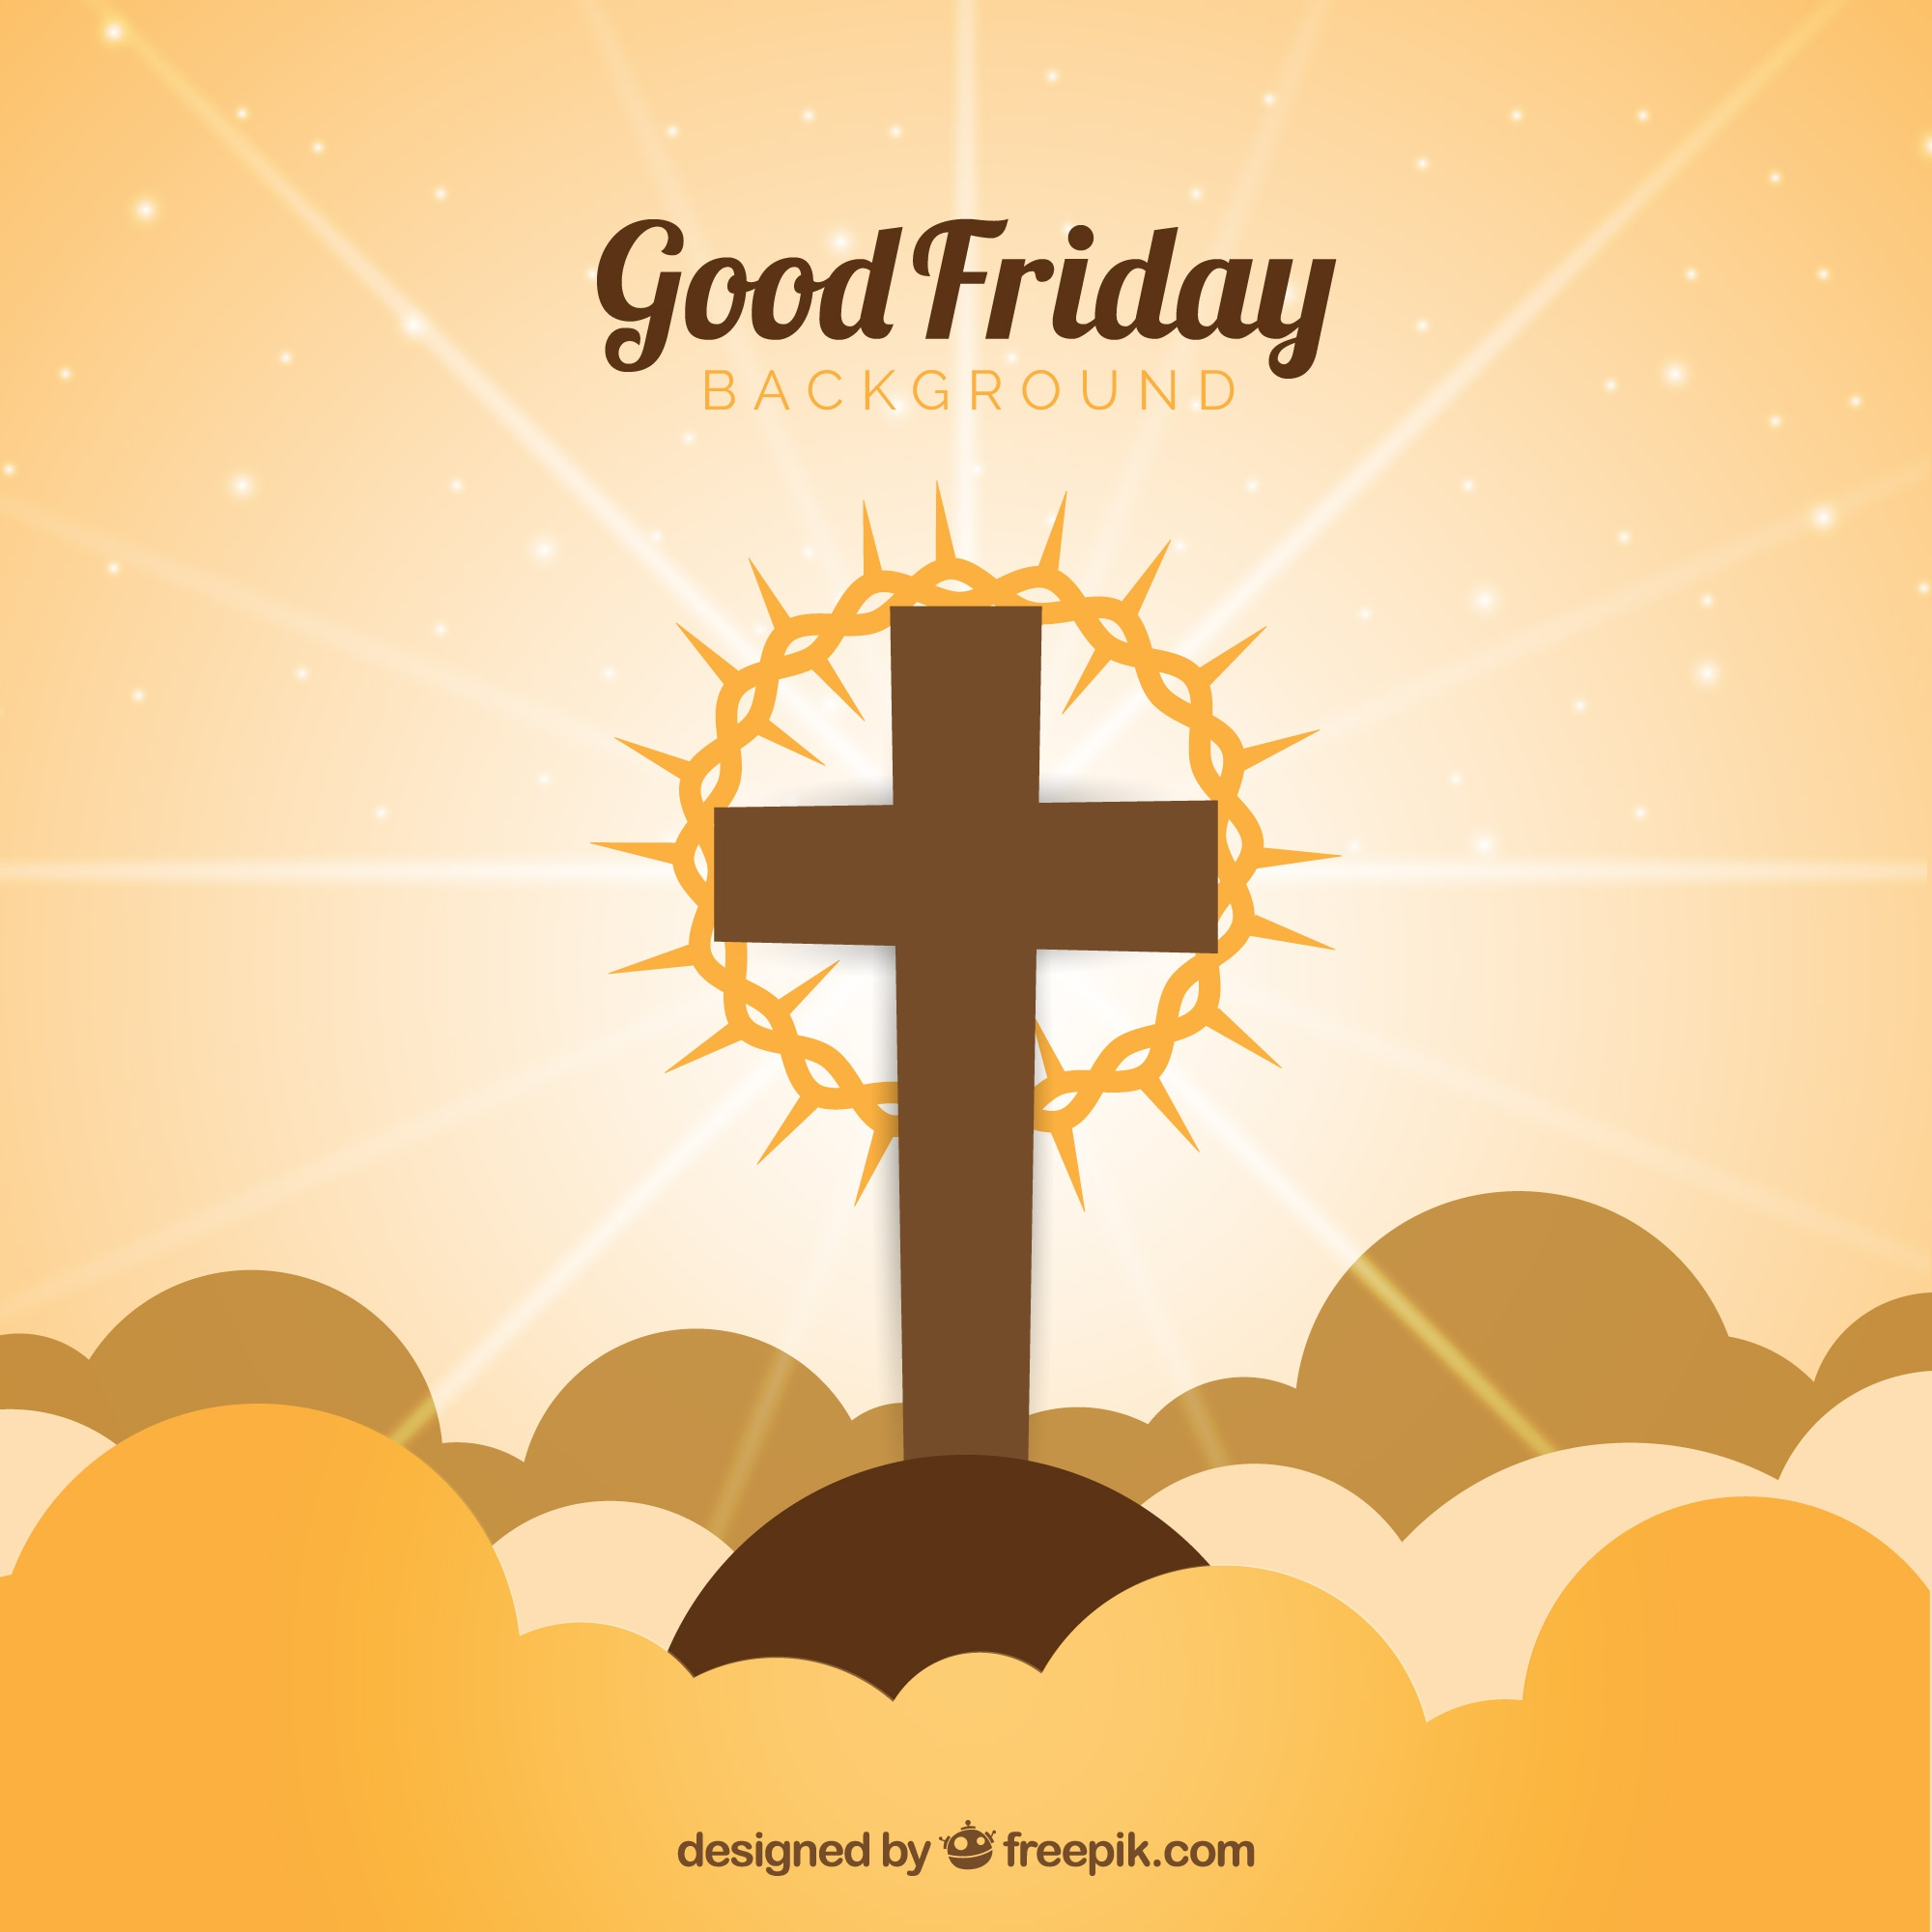 Good Friday background with cross and crown of thorns